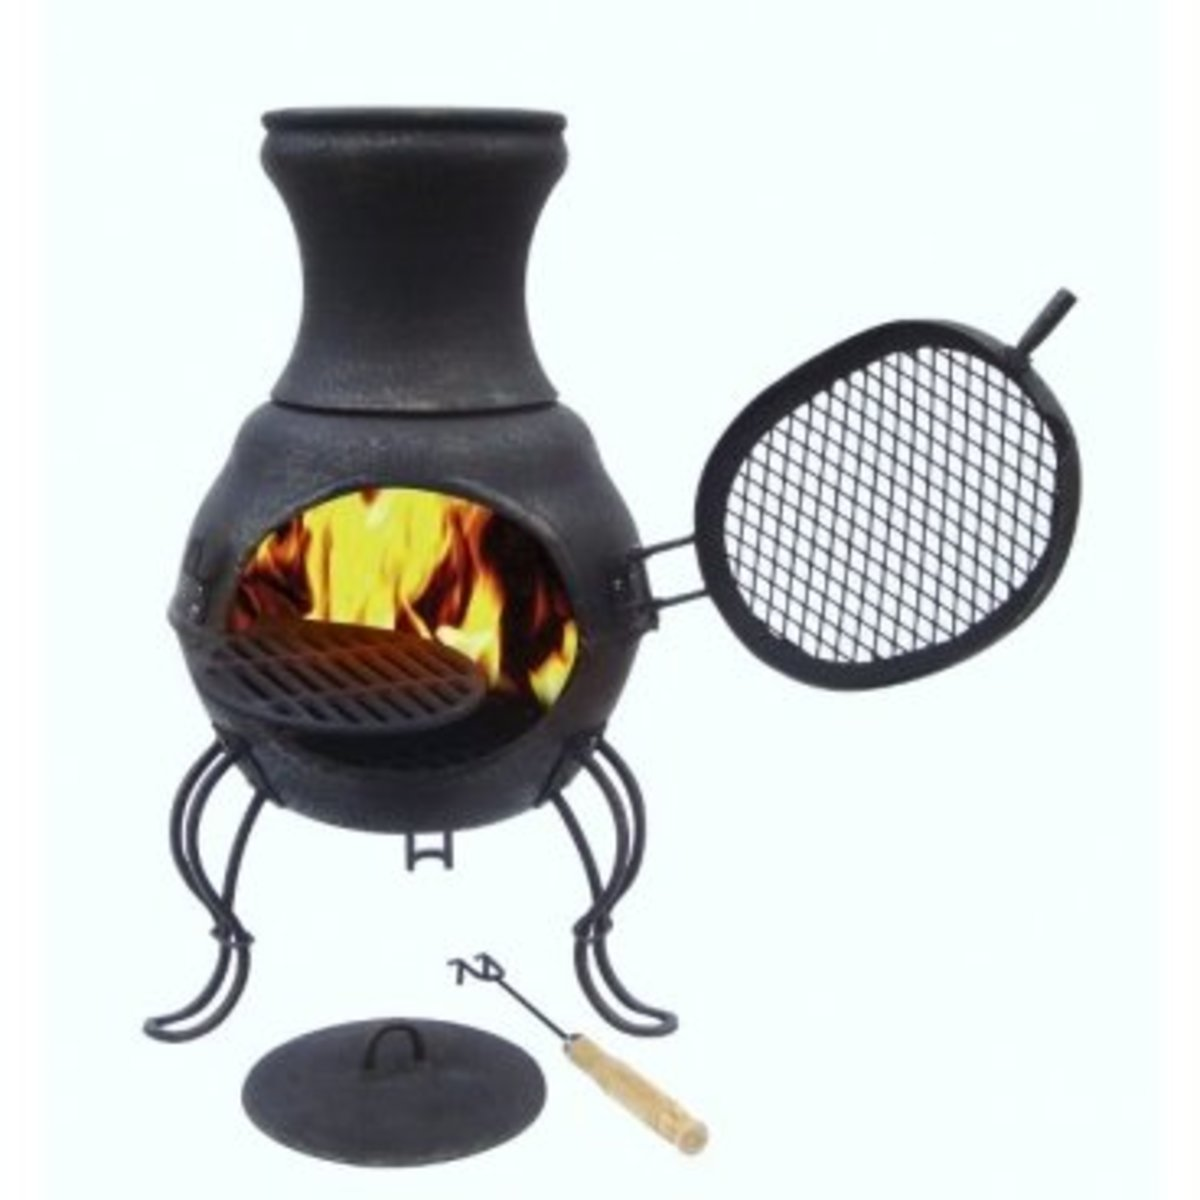 Things you can burn in your chiminea